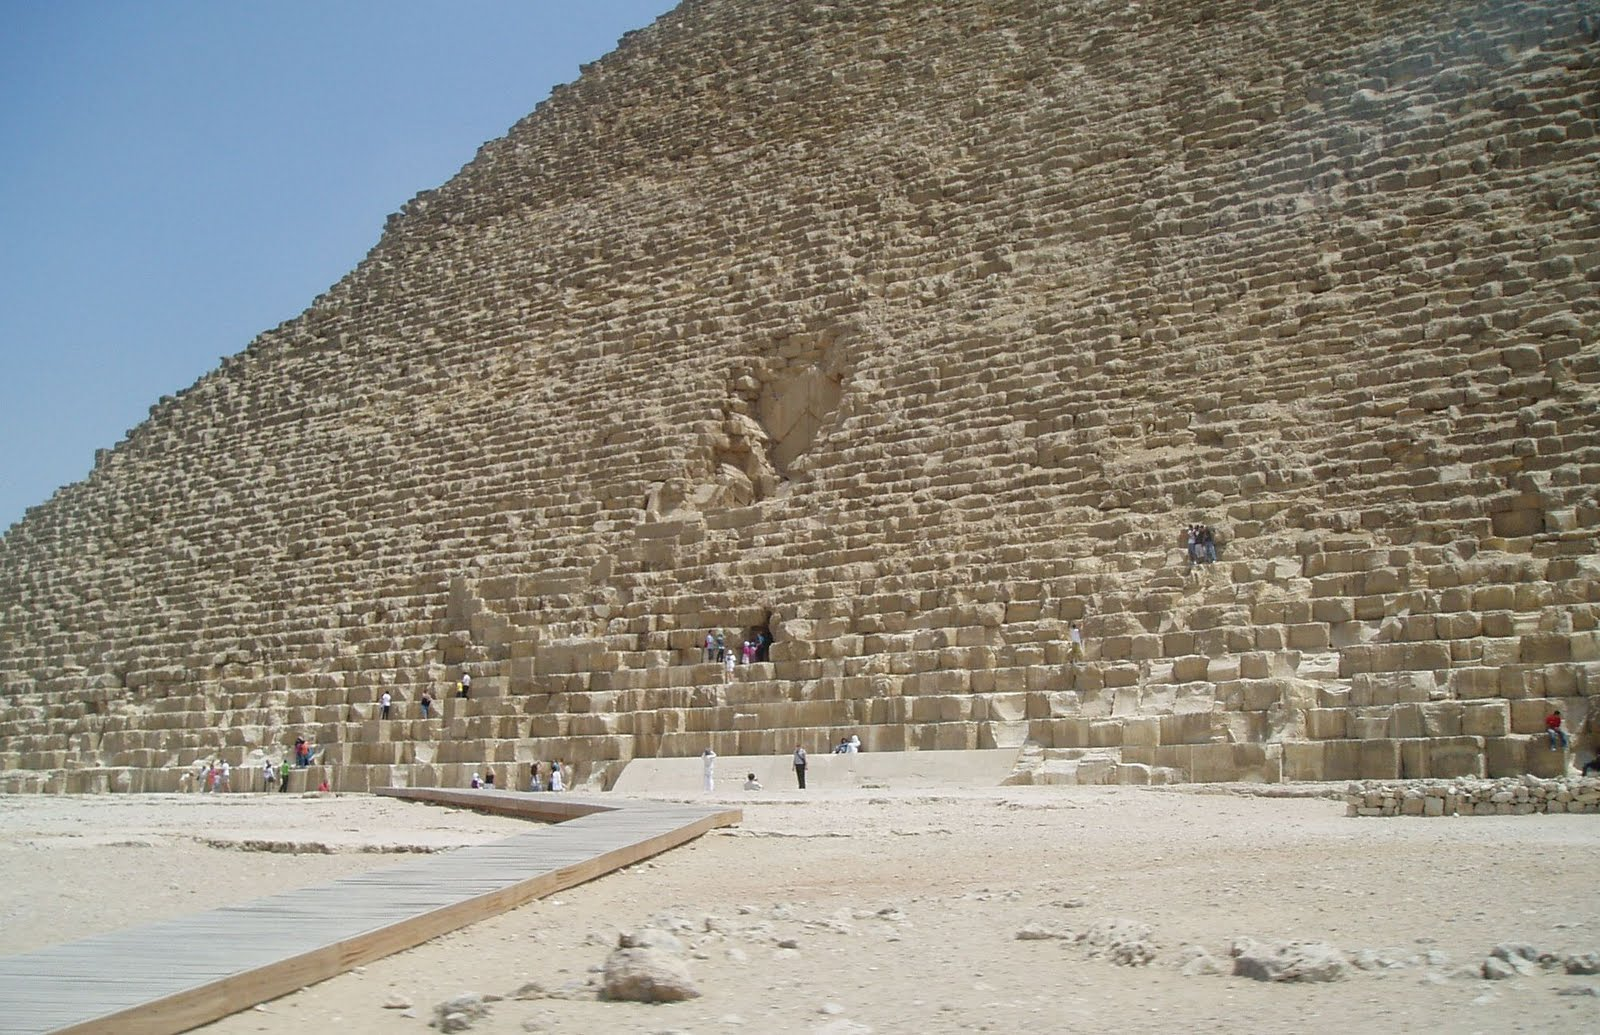 construction of the great pyramid The great pyramid of giza is the only wonder of the ancient world that has survived to the present day the tomb is attributed to khufu or cheops, pharaoh in ancient egypt from 2,620 to 2,580 bc.